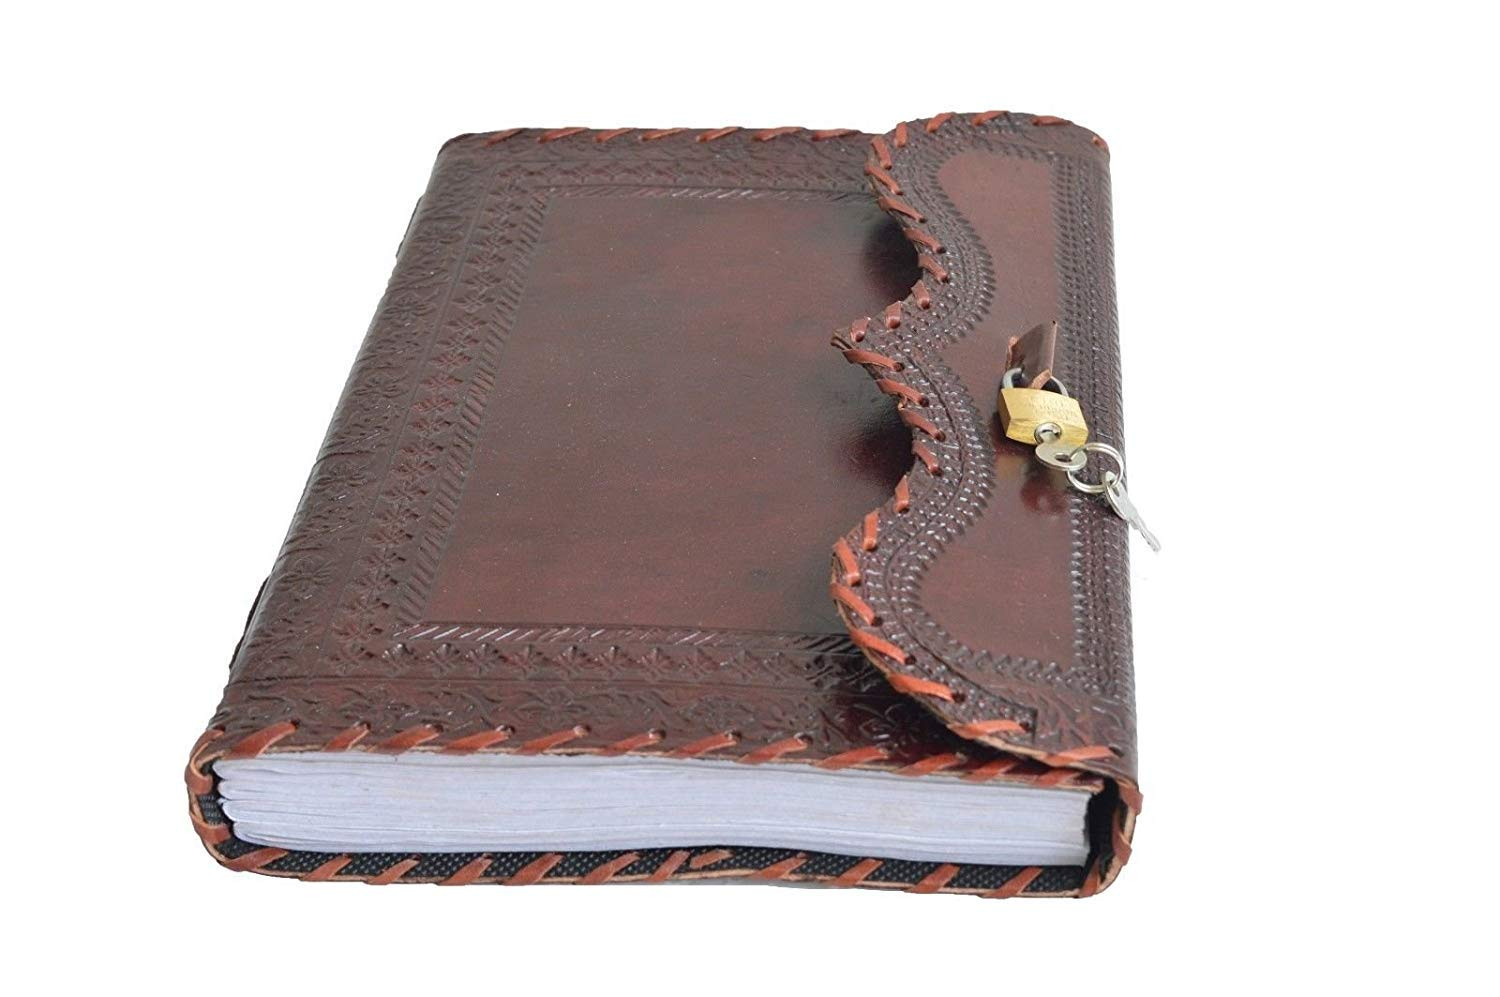 Amazon.com : Genuine Leather Journal Vintage Antique Style ...